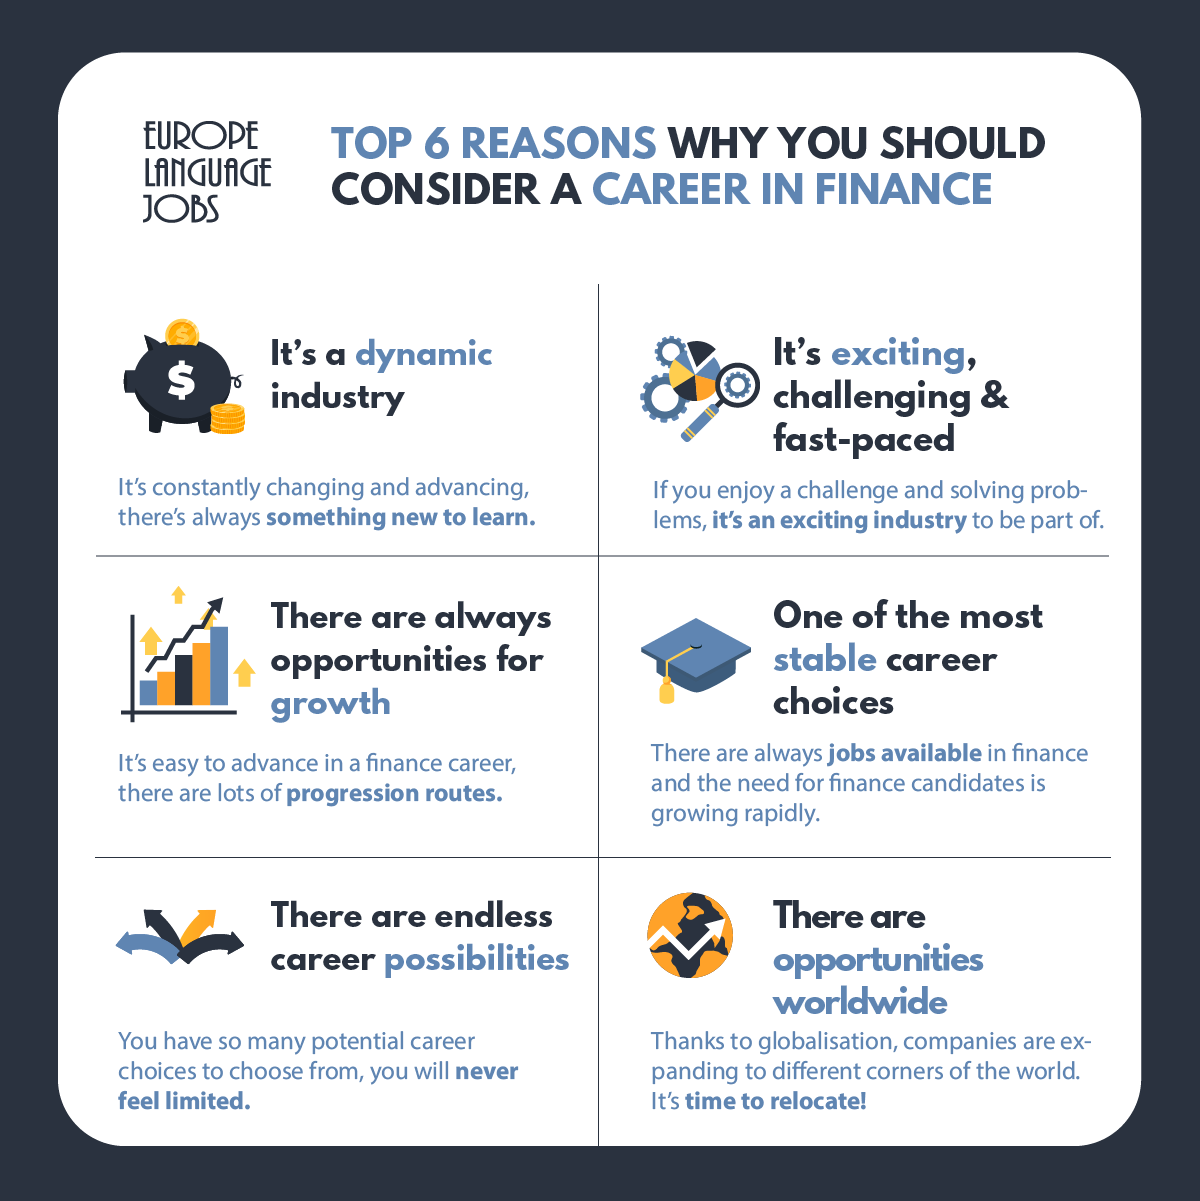 Top 6 Reasons Why You Should Consider A Career In Finance